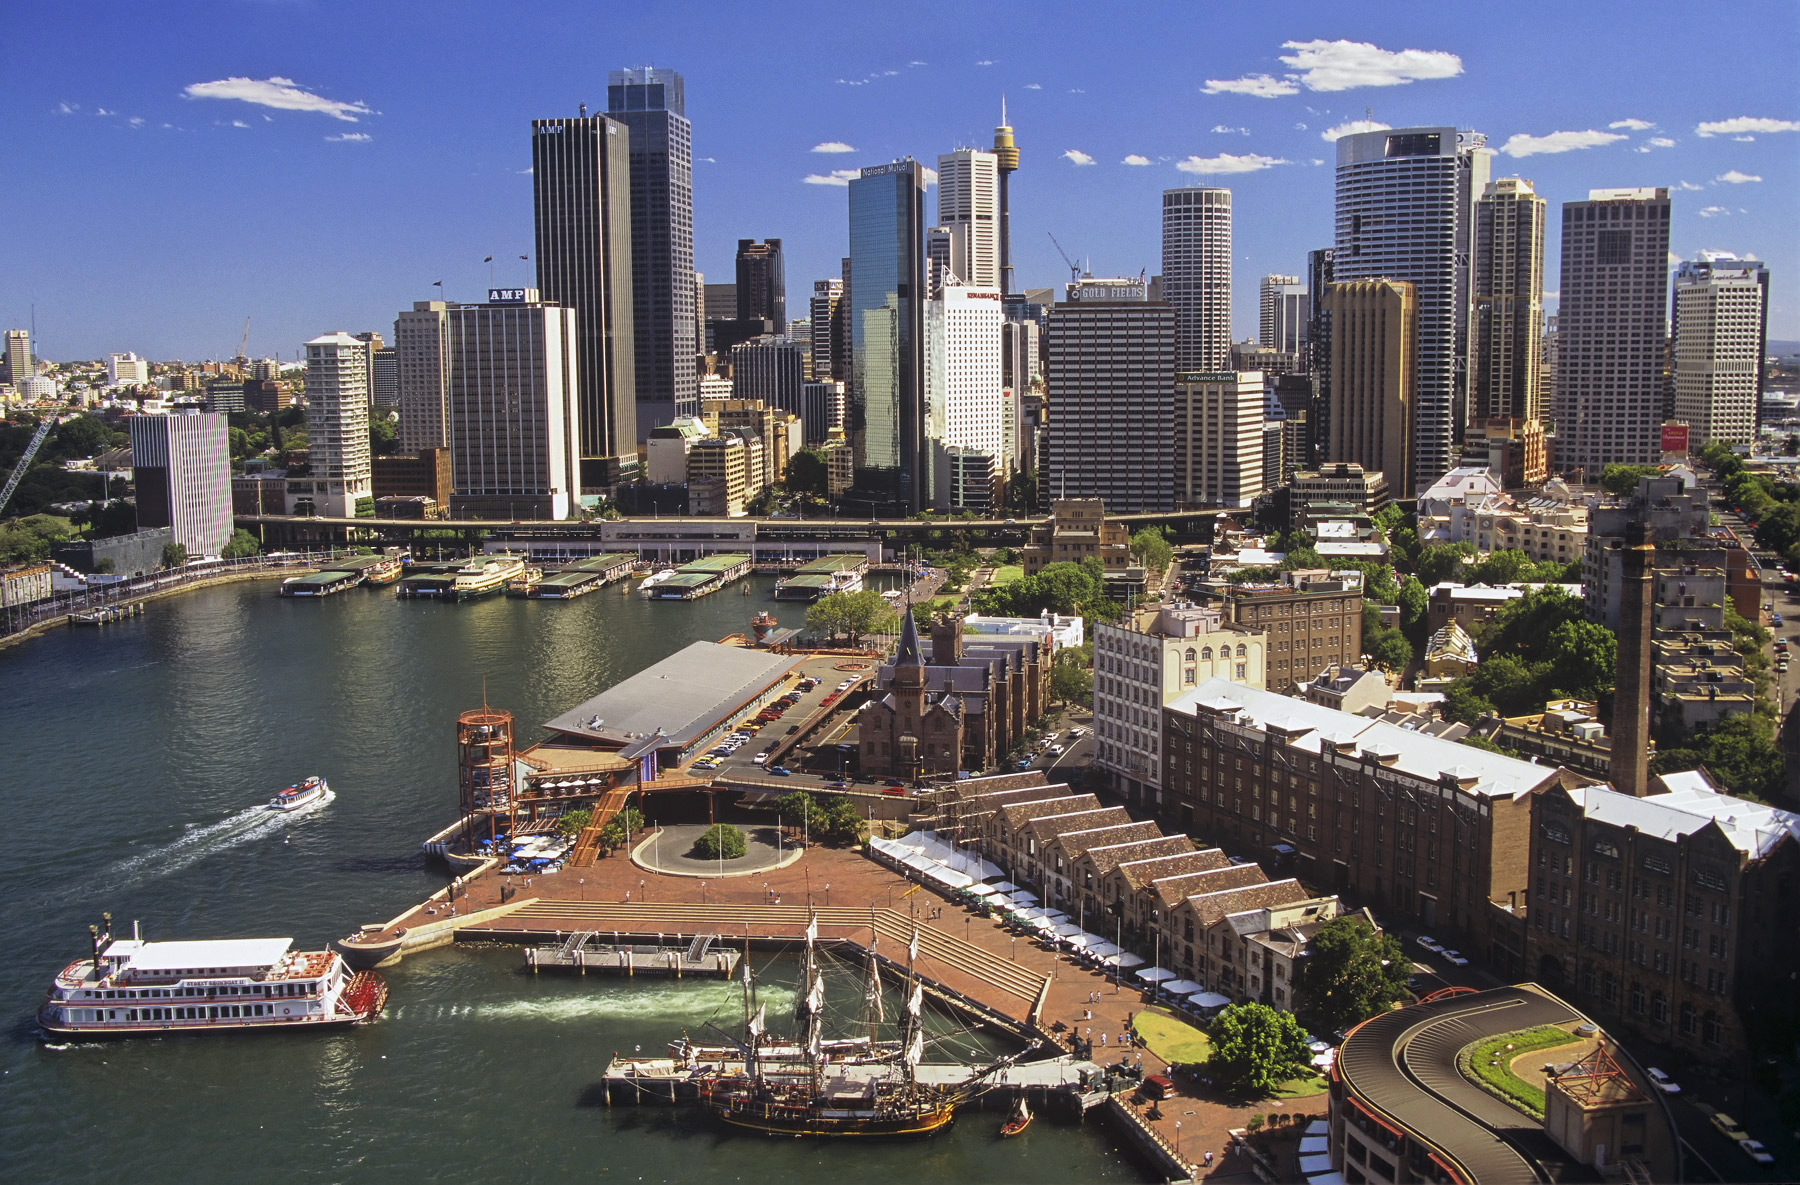 One of the best views of Sydney's beautiful harbour is from a lofty viewpoint on top of the bridge viewing platform.  The city...